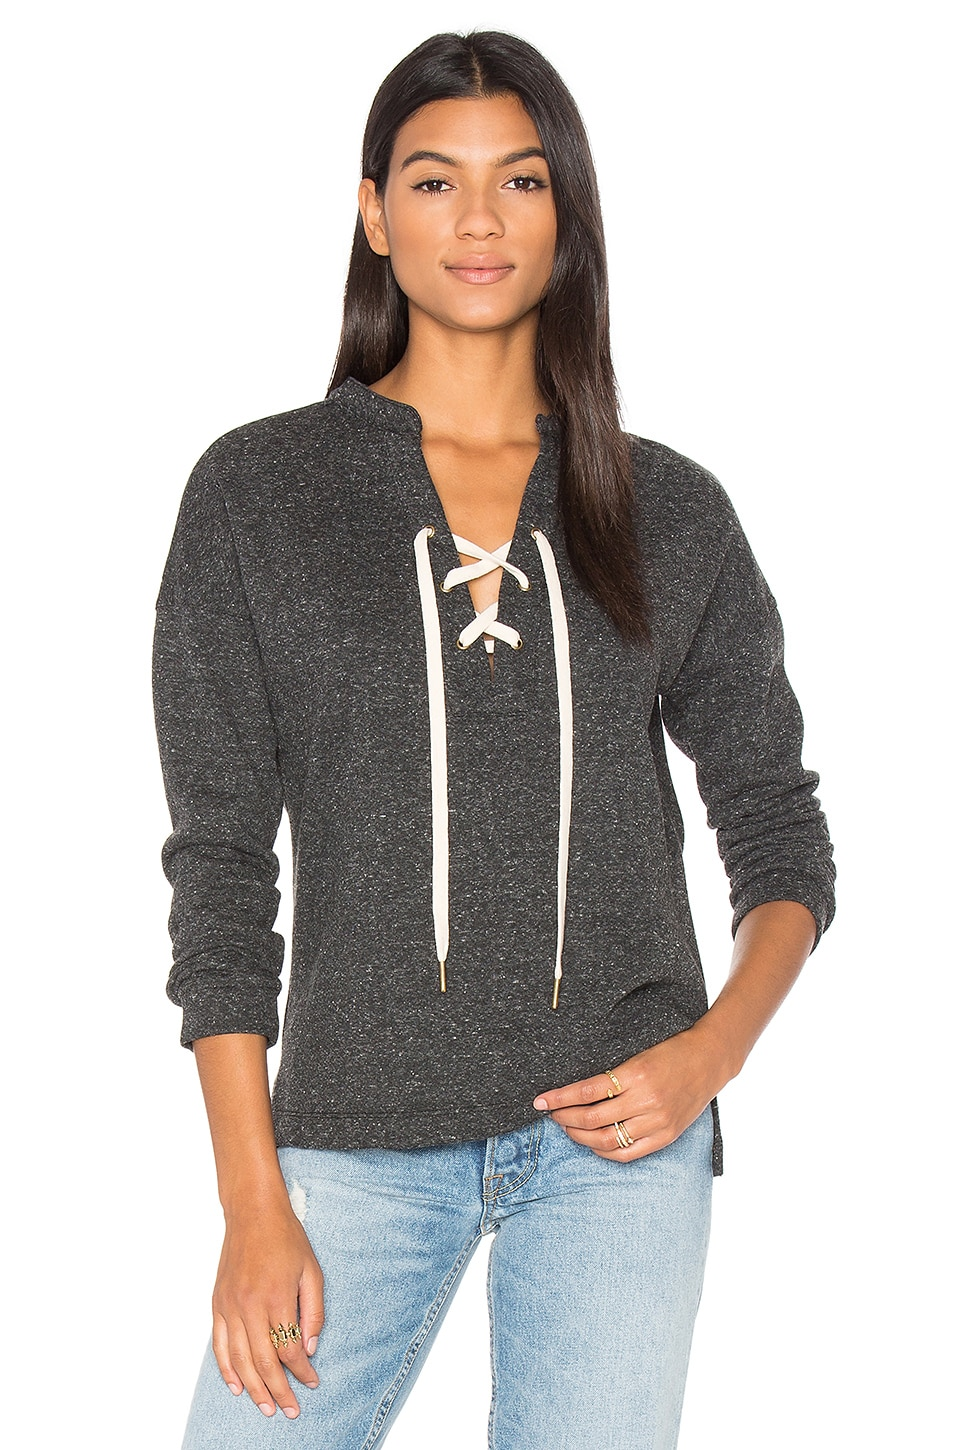 maven west Lace Up Sweatshirt in Charcoal